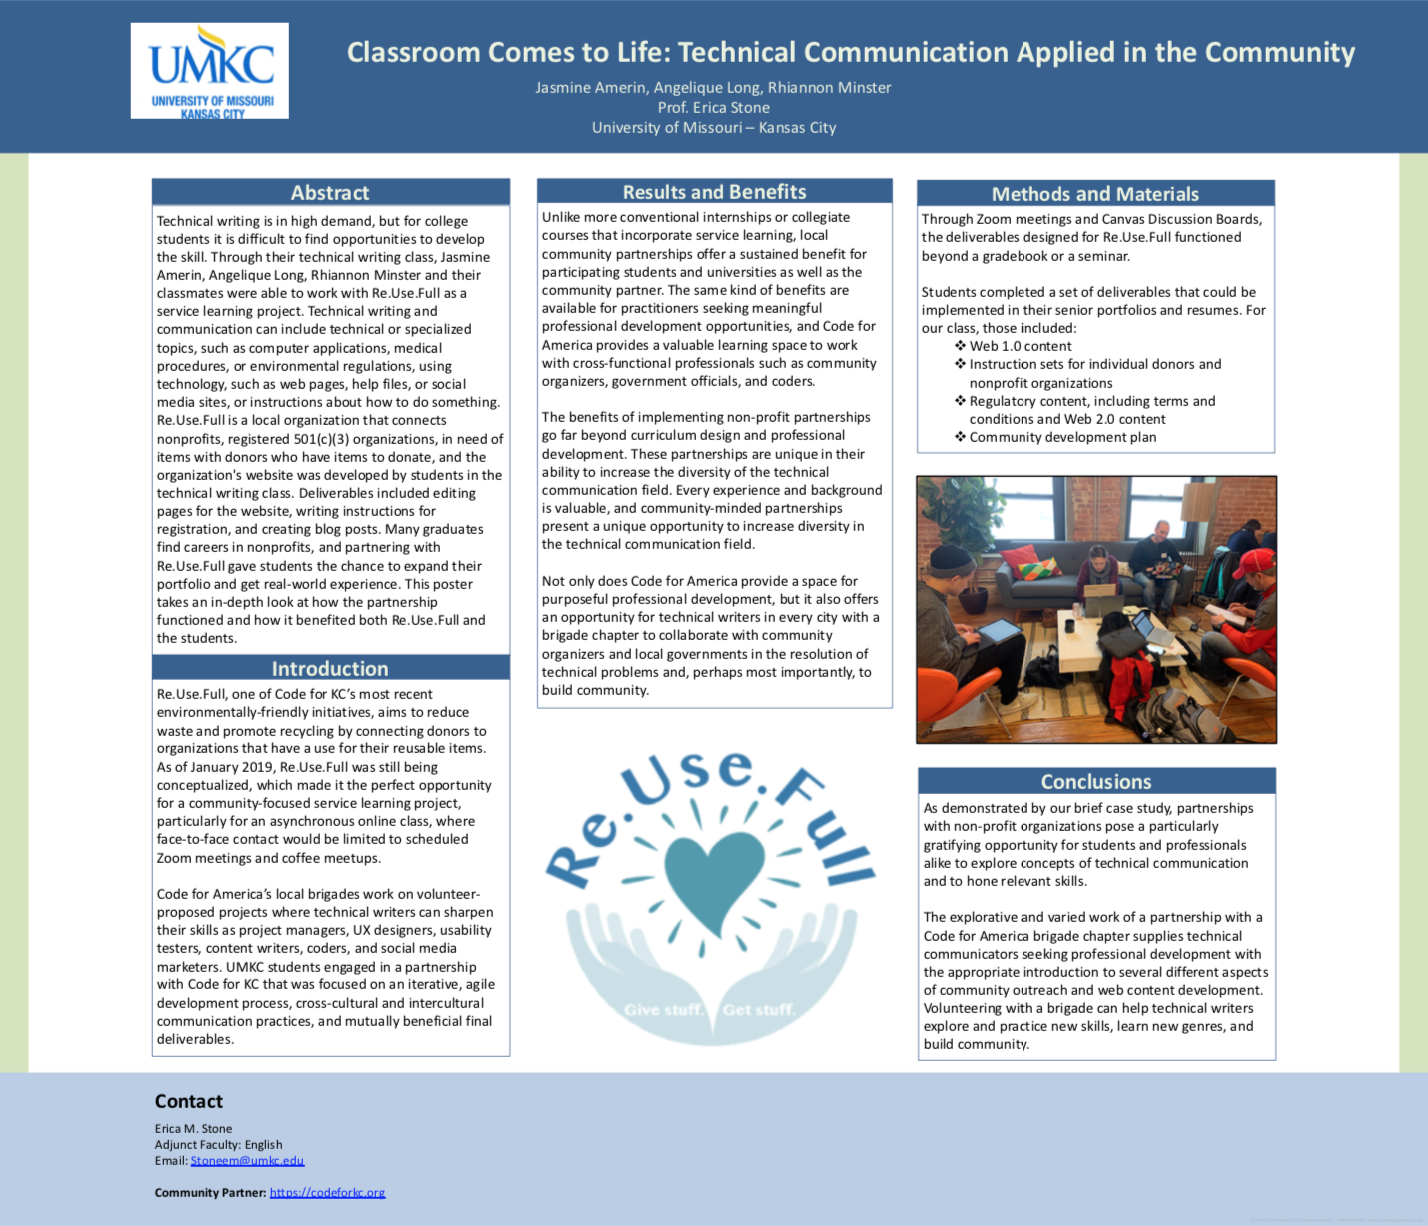 Jasmine Amerin, Angelique Long, and Rhiannon Minster's poster, Classroom Comes to Life: Technical Communication Applied in the Community, describes the collaboration, research, production processes for our class.